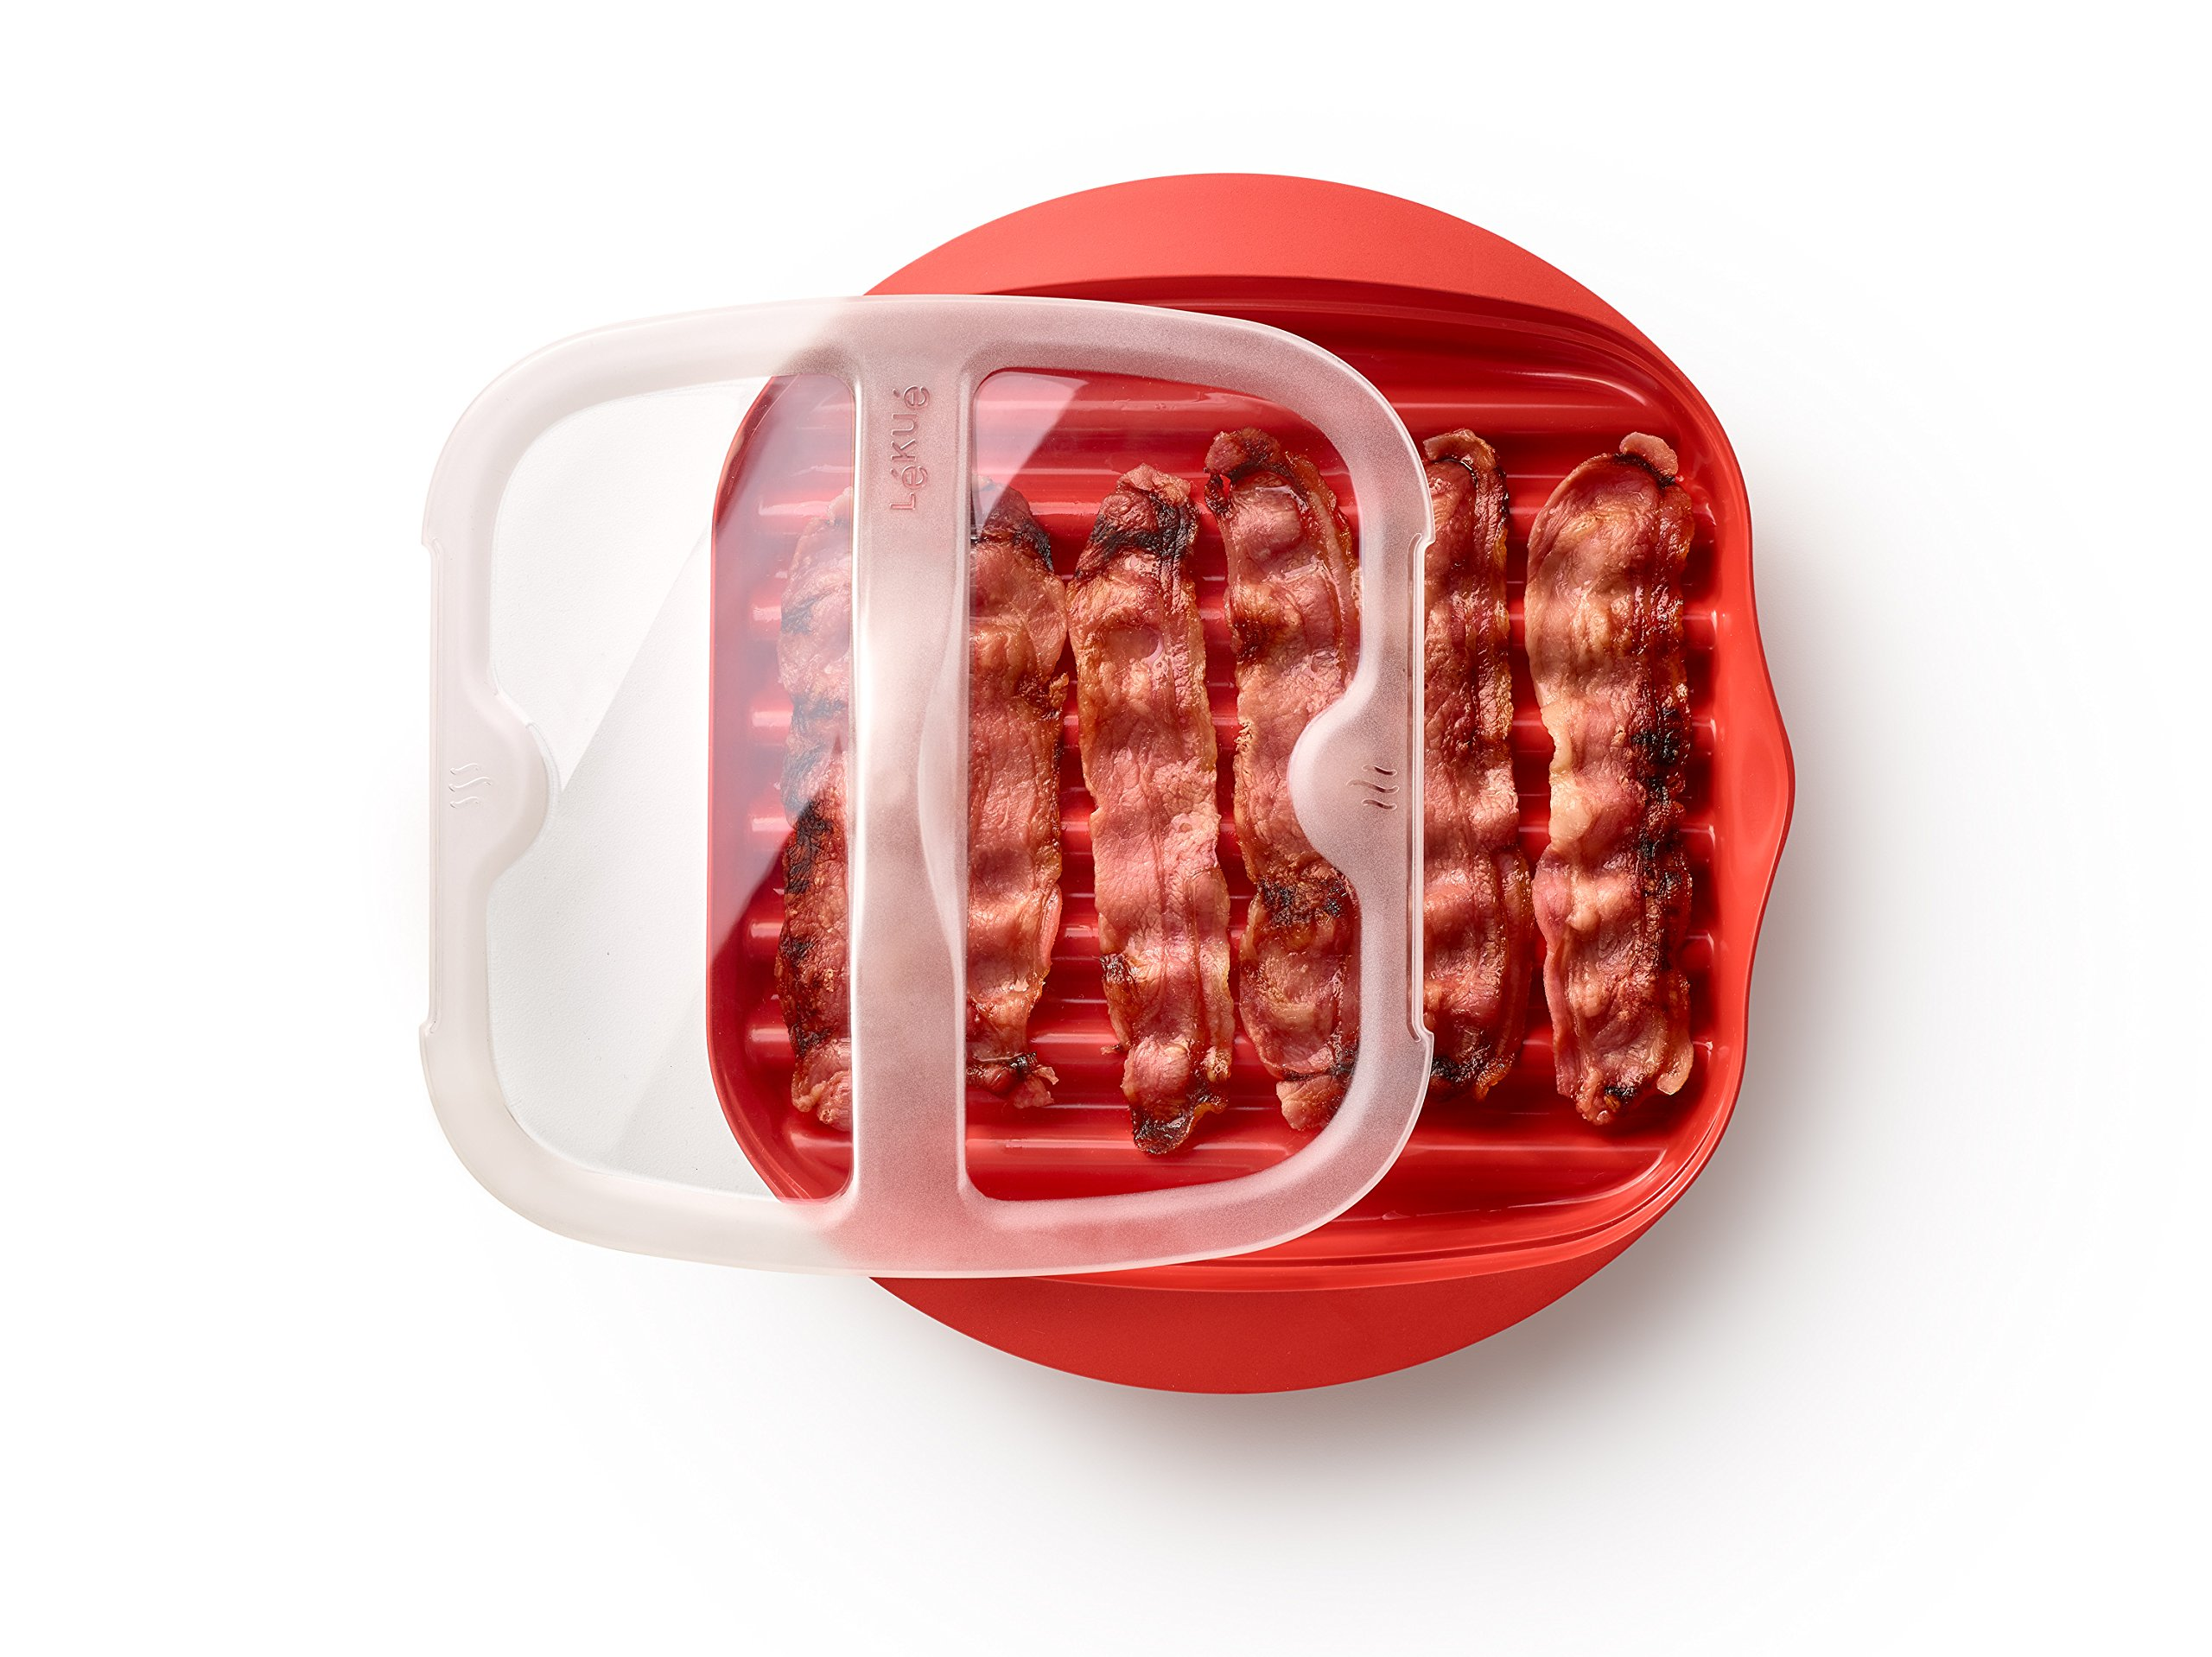 Lekue Microwave Bacon Maker/Cooker with Lid, 11.02'' L x 9.8'' W x 2.3'' H, Red by Lekue (Image #5)